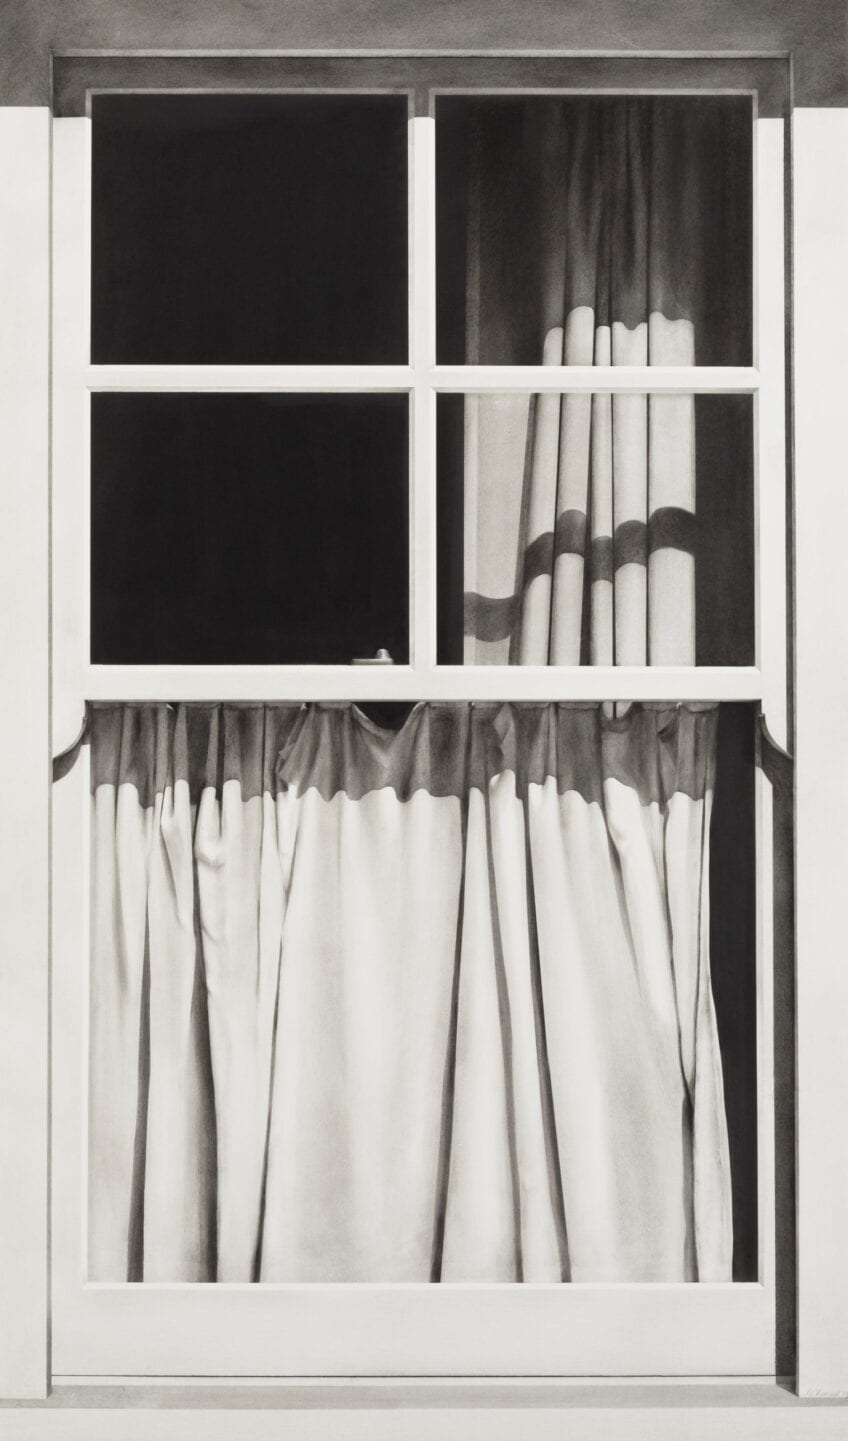 'Union Street, London #2', 2019, charcoal on paper, framed, 115 x 77cm